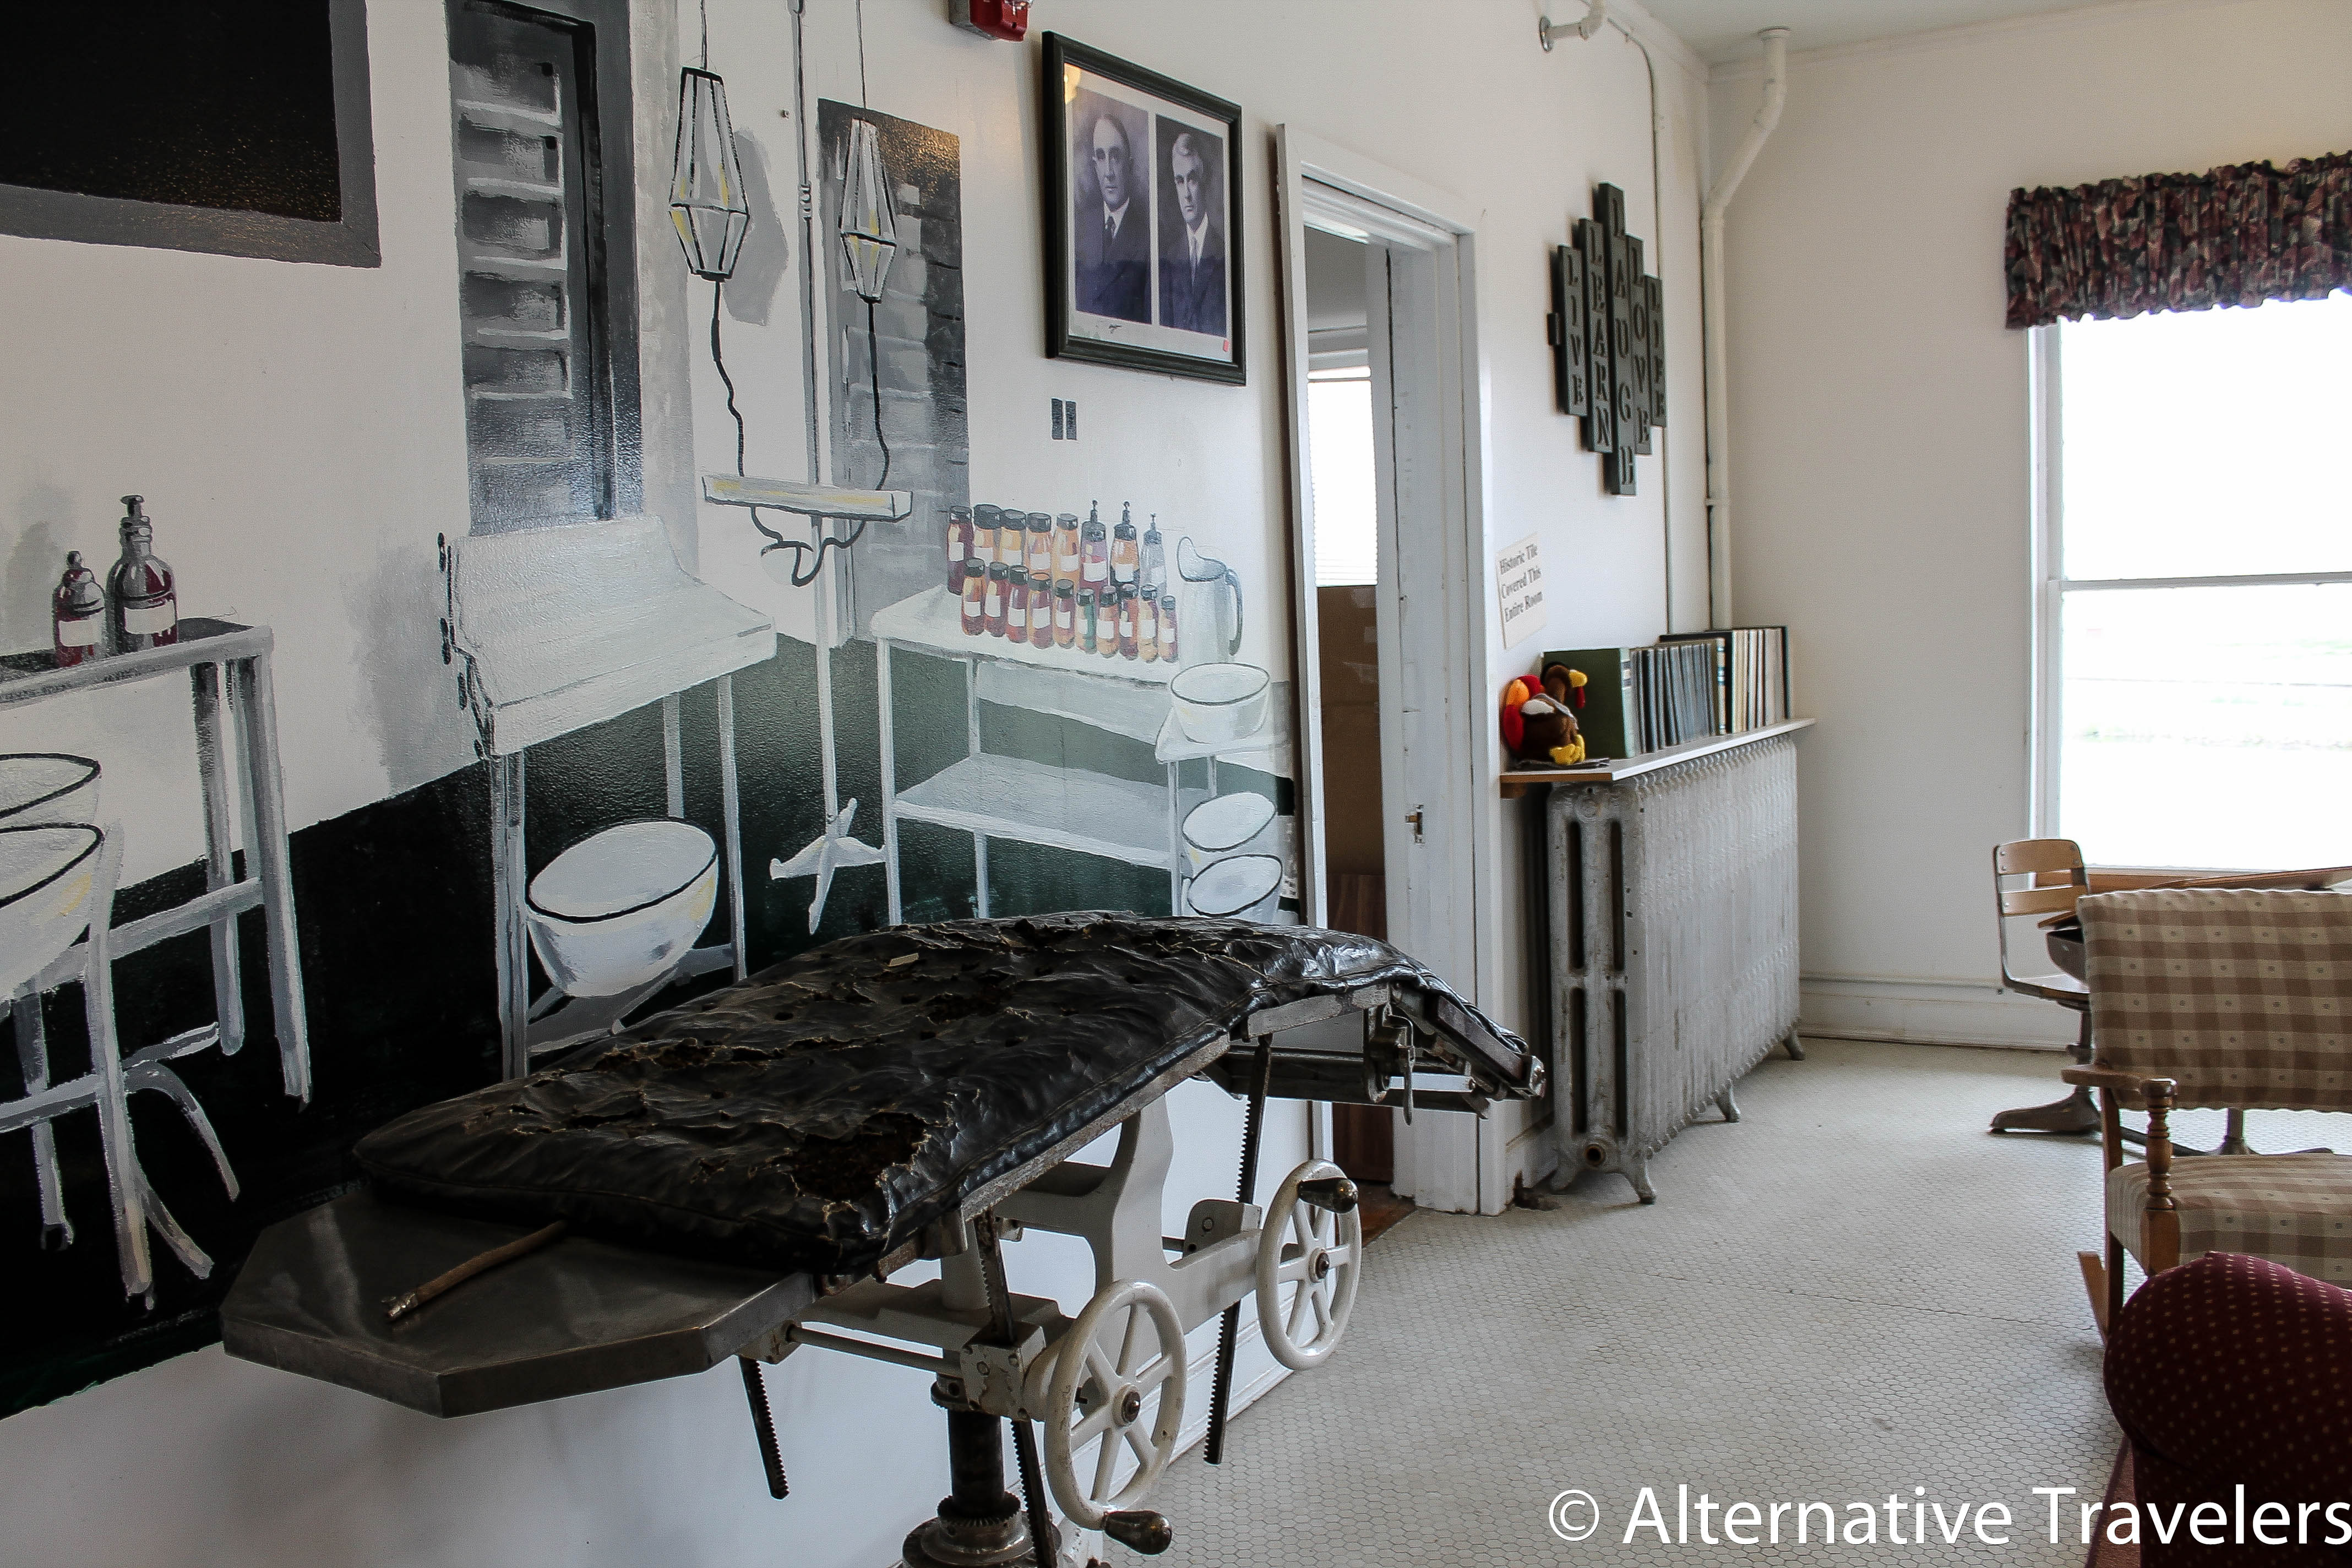 The old surgery room, complete with torn old surgery table.